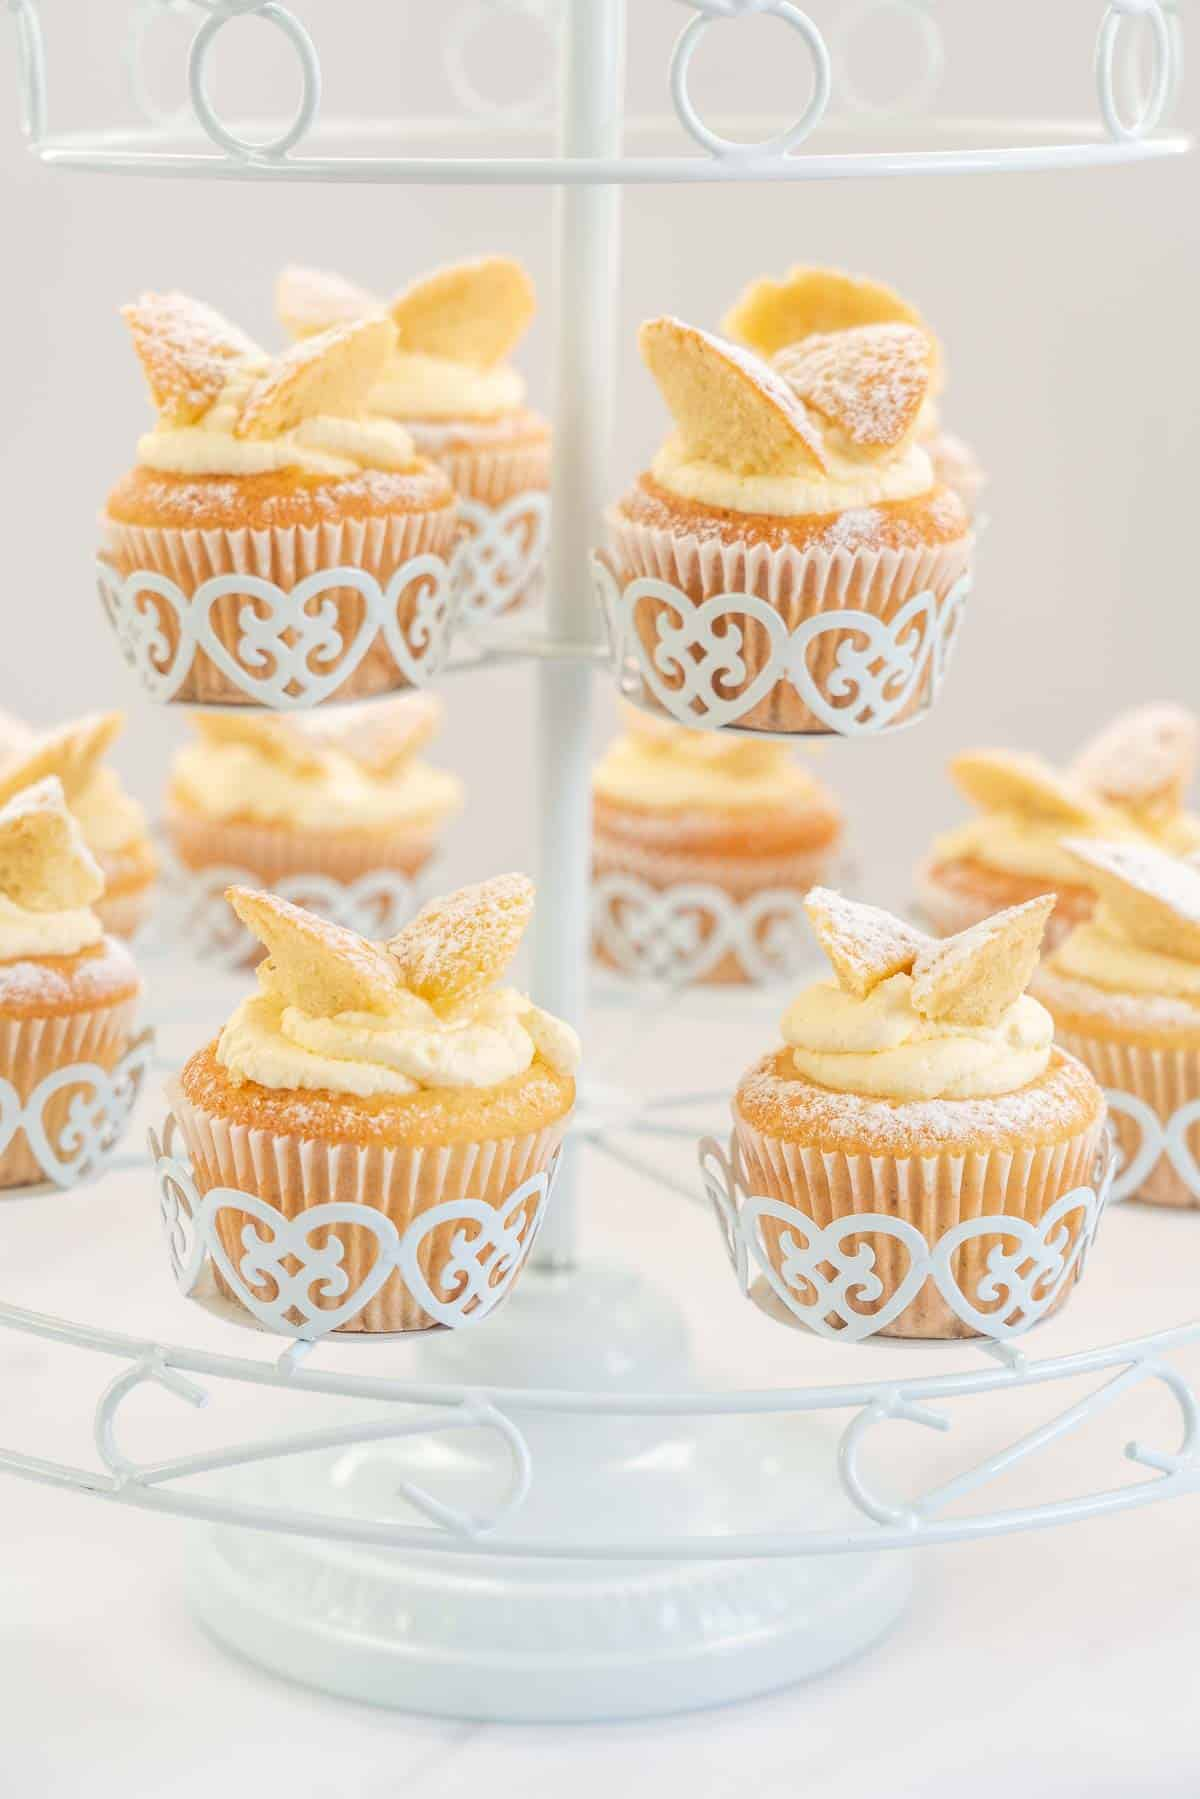 A dozen butterfly cupcakes in a white wire cupcake stand